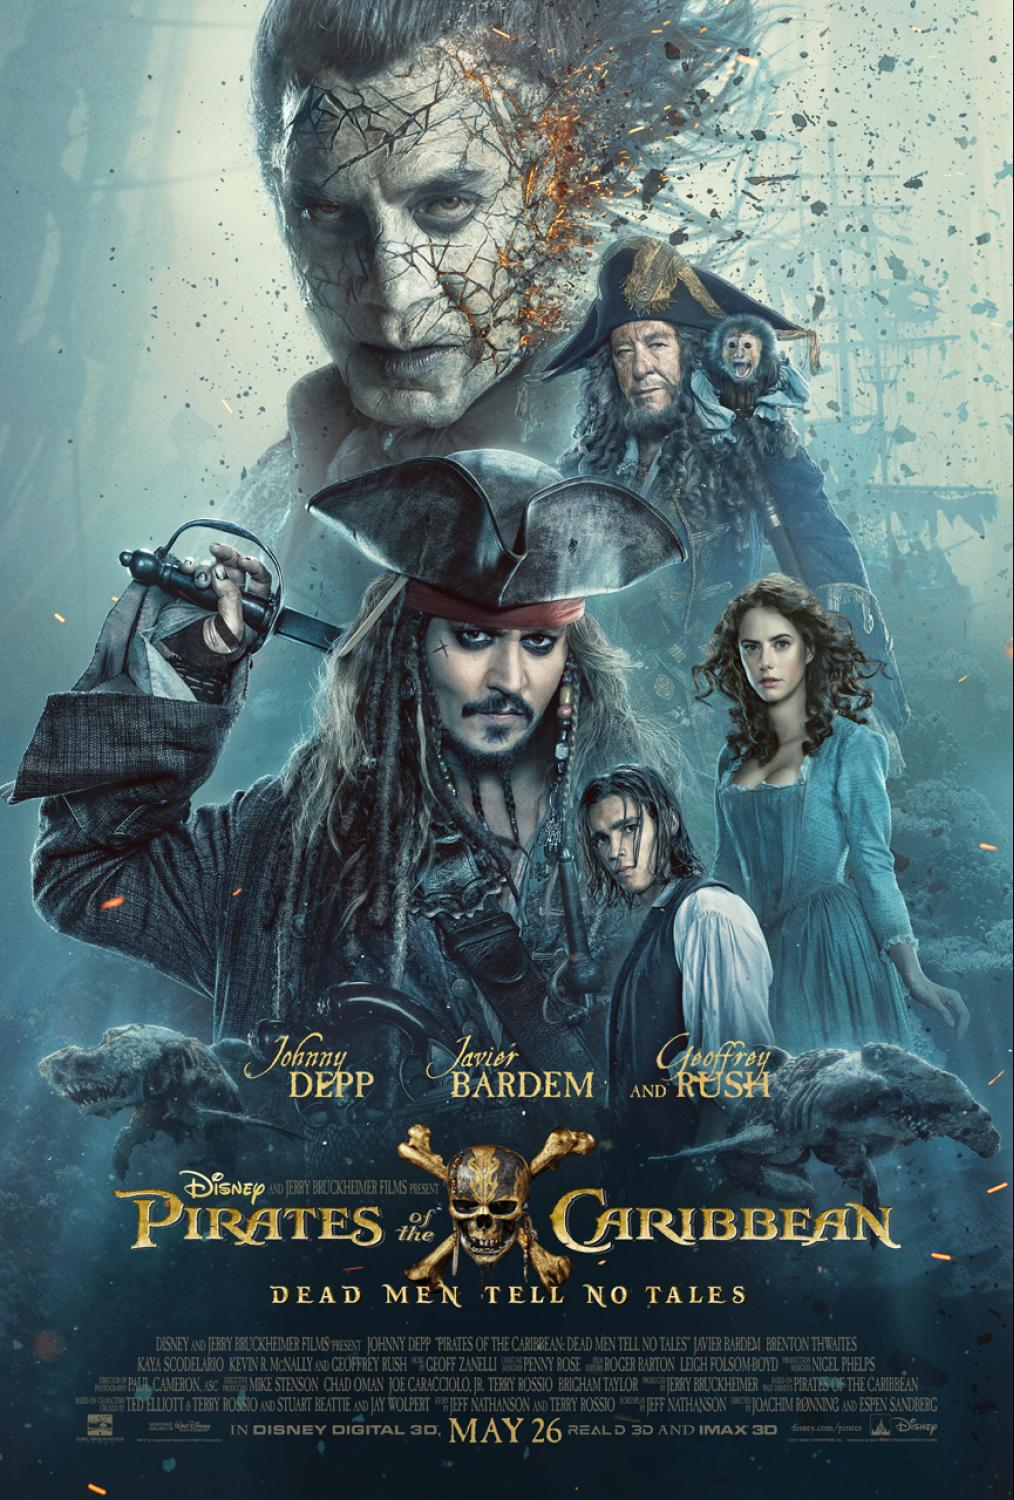 The new Pirates of the Caribbean: Dead Men Tell No Tales is a hit! The movie is rated PG-13 and opens in theatres May 26th.